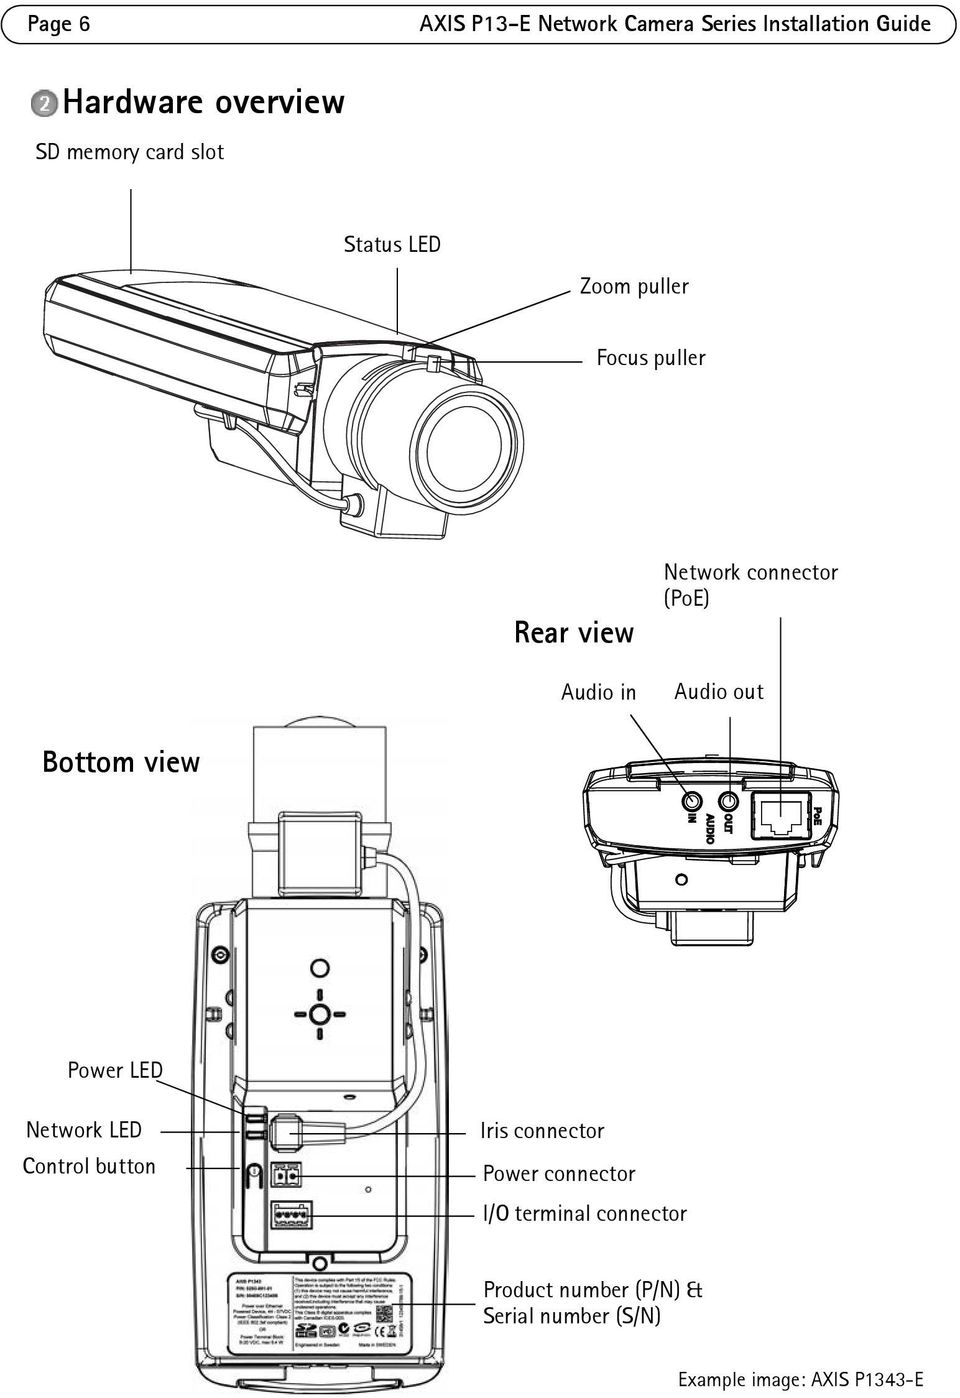 INSTALLATION GUIDE. AXIS P13-E Network Camera Series. AXIS